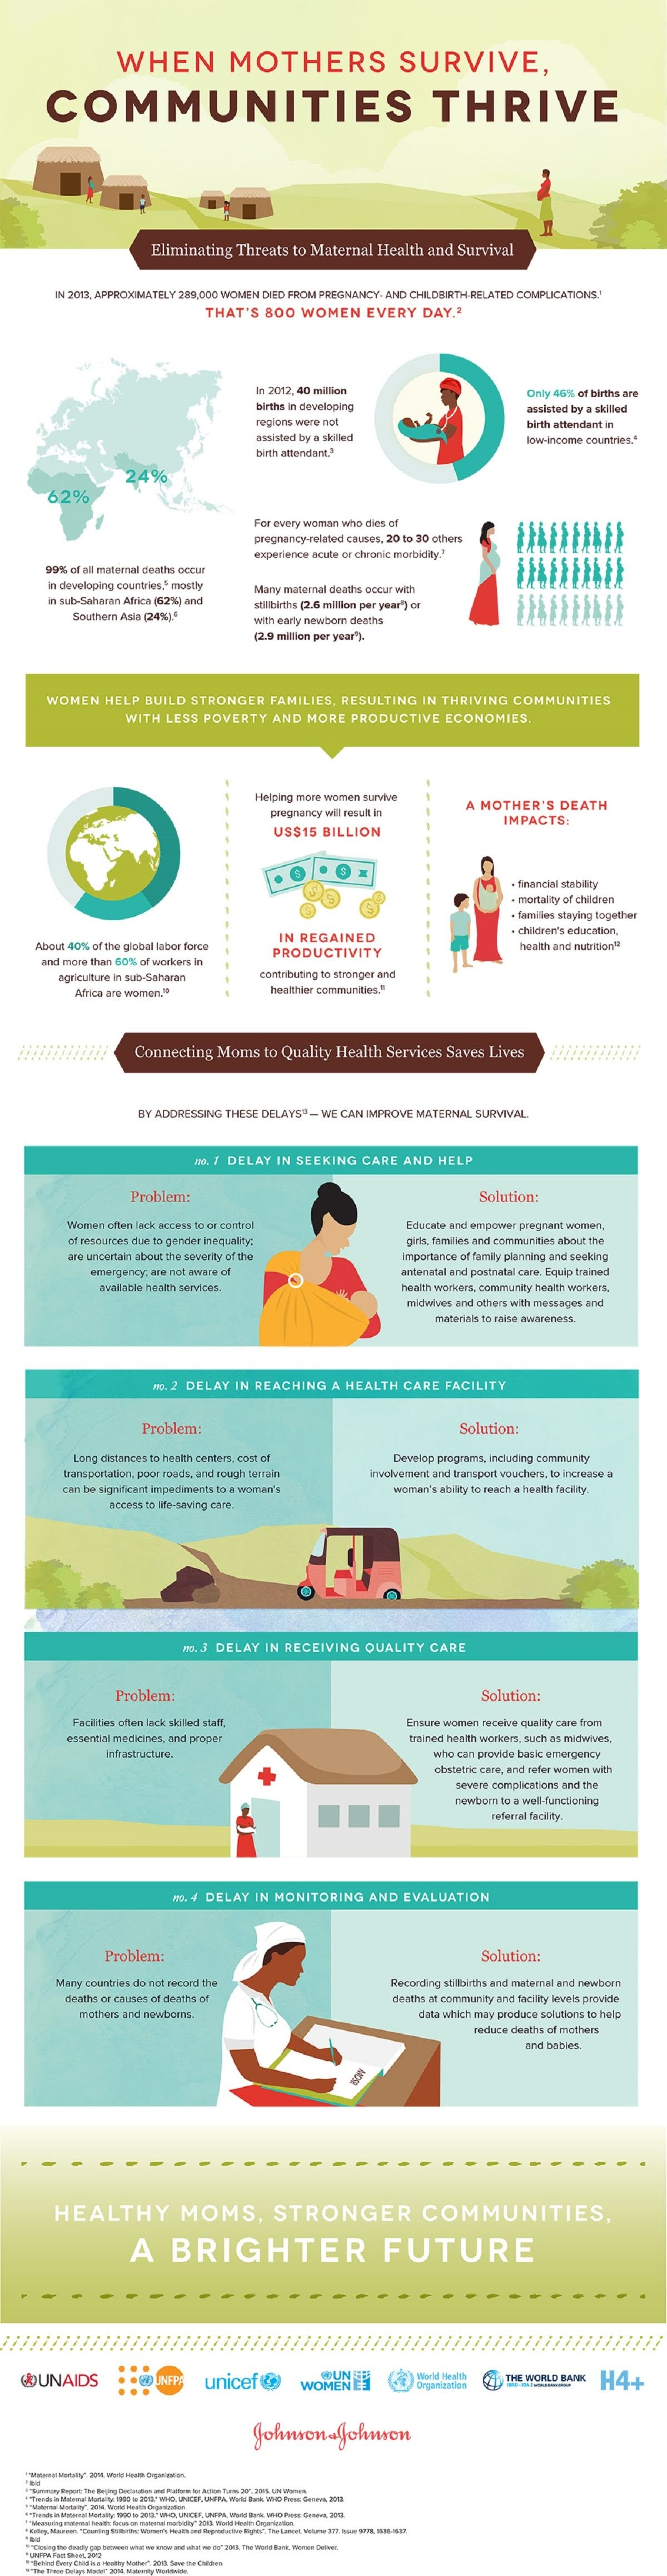 when-mothers-survive-communities-thrive-infographic